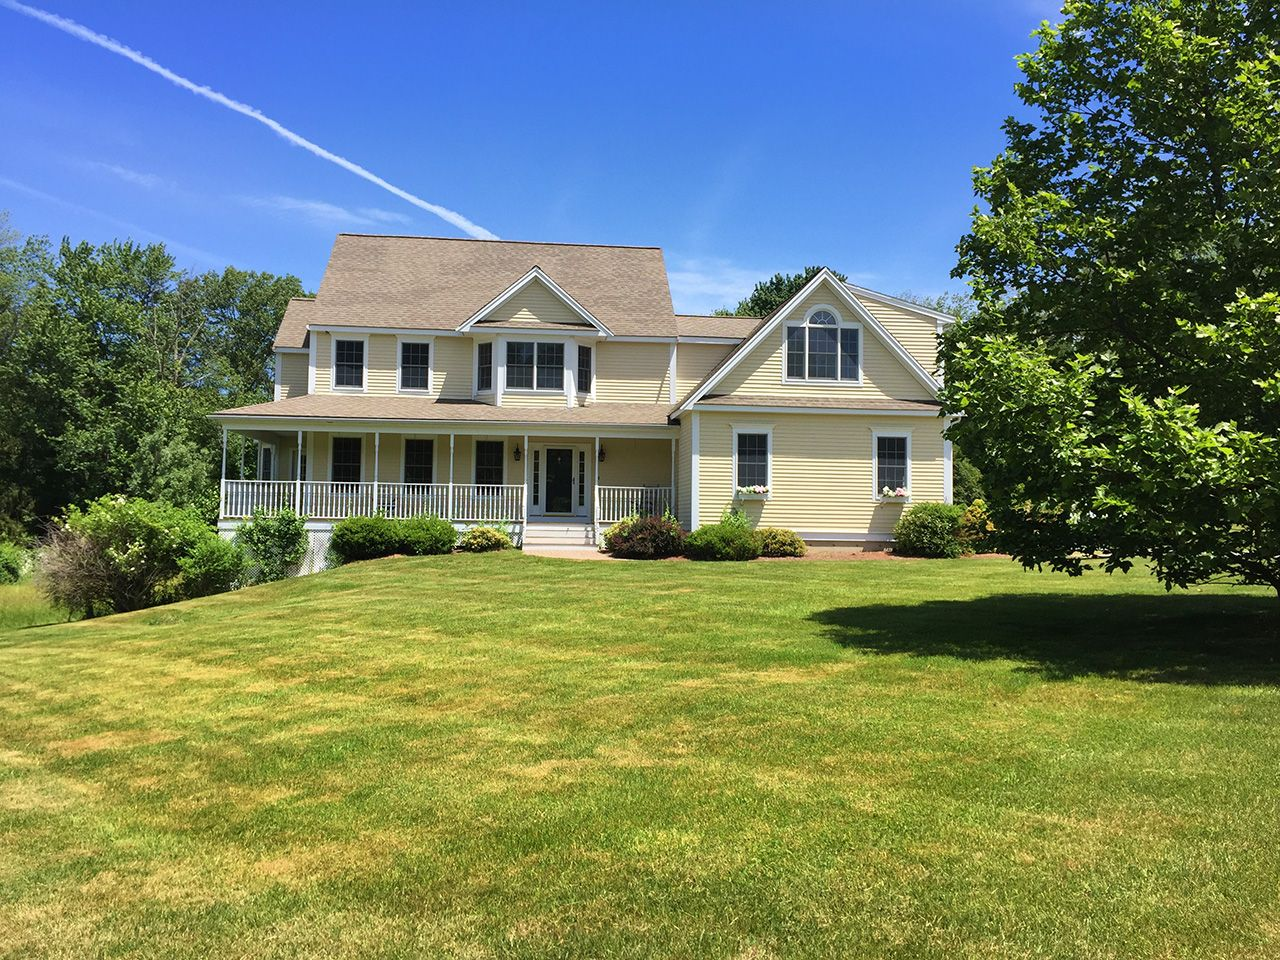 Single Family Home for Sale at 58 Old Harvard Road Bolton, Massachusetts,01740 United States